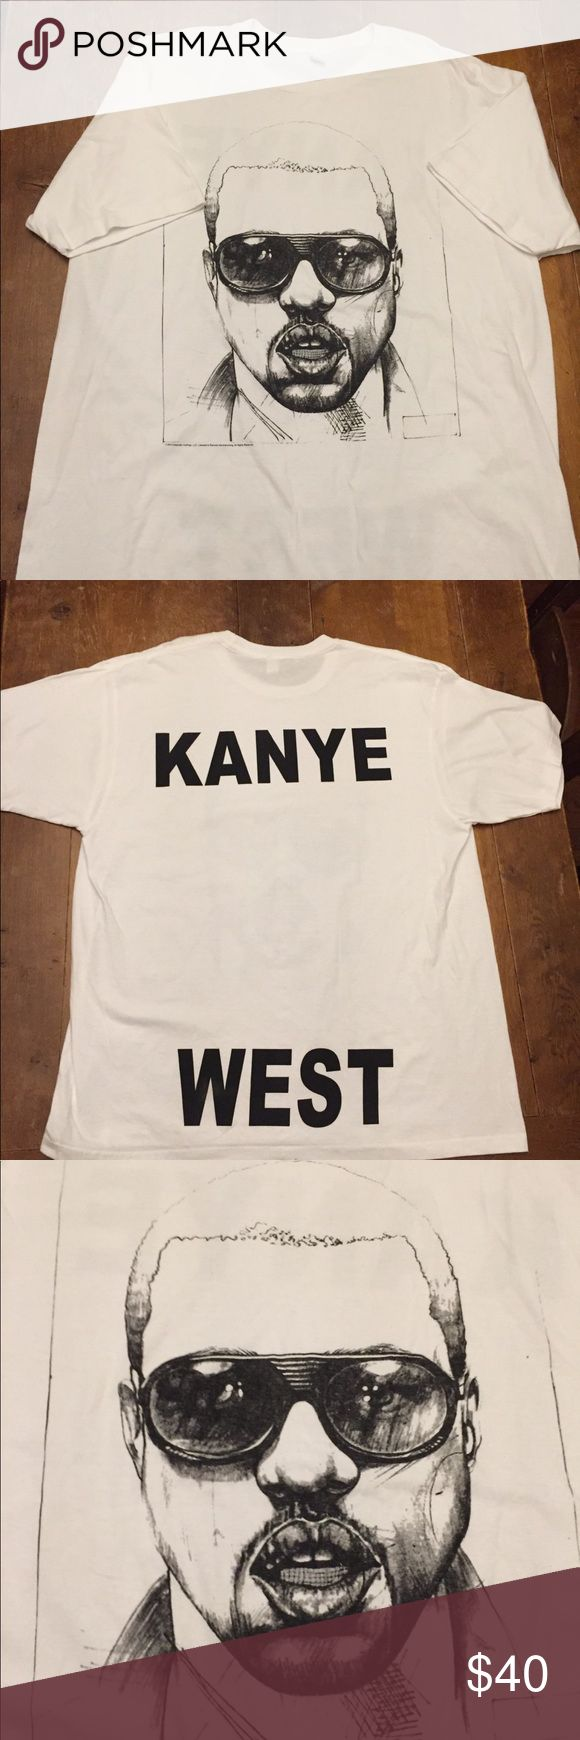 Kanye West concert T Shirt Excellent condition Shirts Tees - Short Sleeve